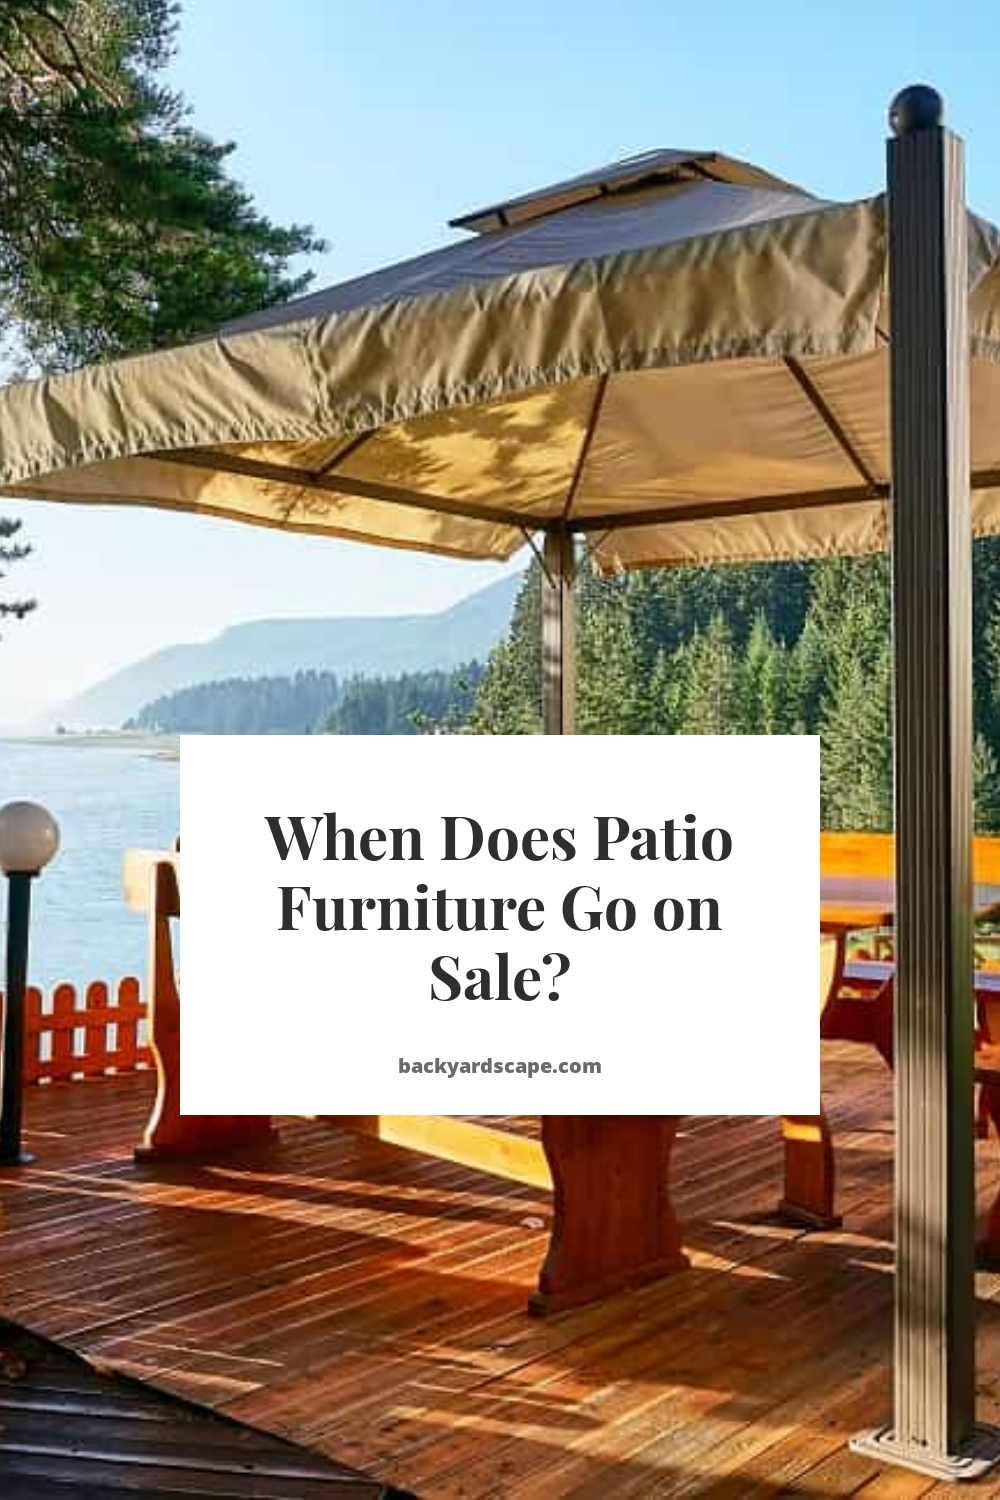 When Does Patio Furniture Go on Sale?